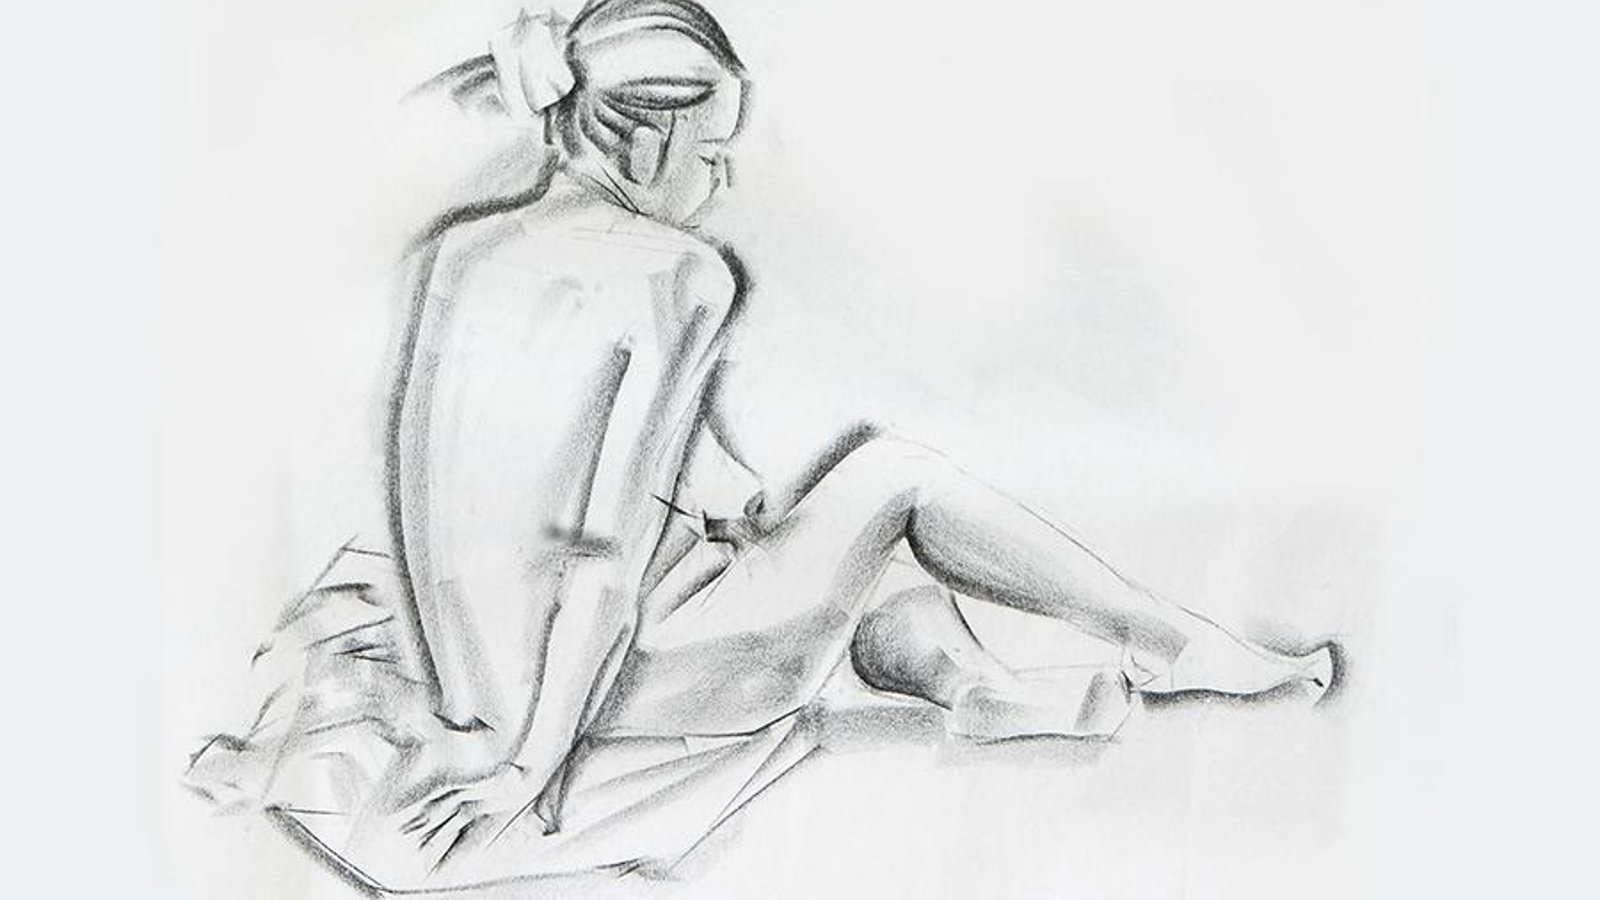 Drawing - Dry, Liquid, and Modern Media